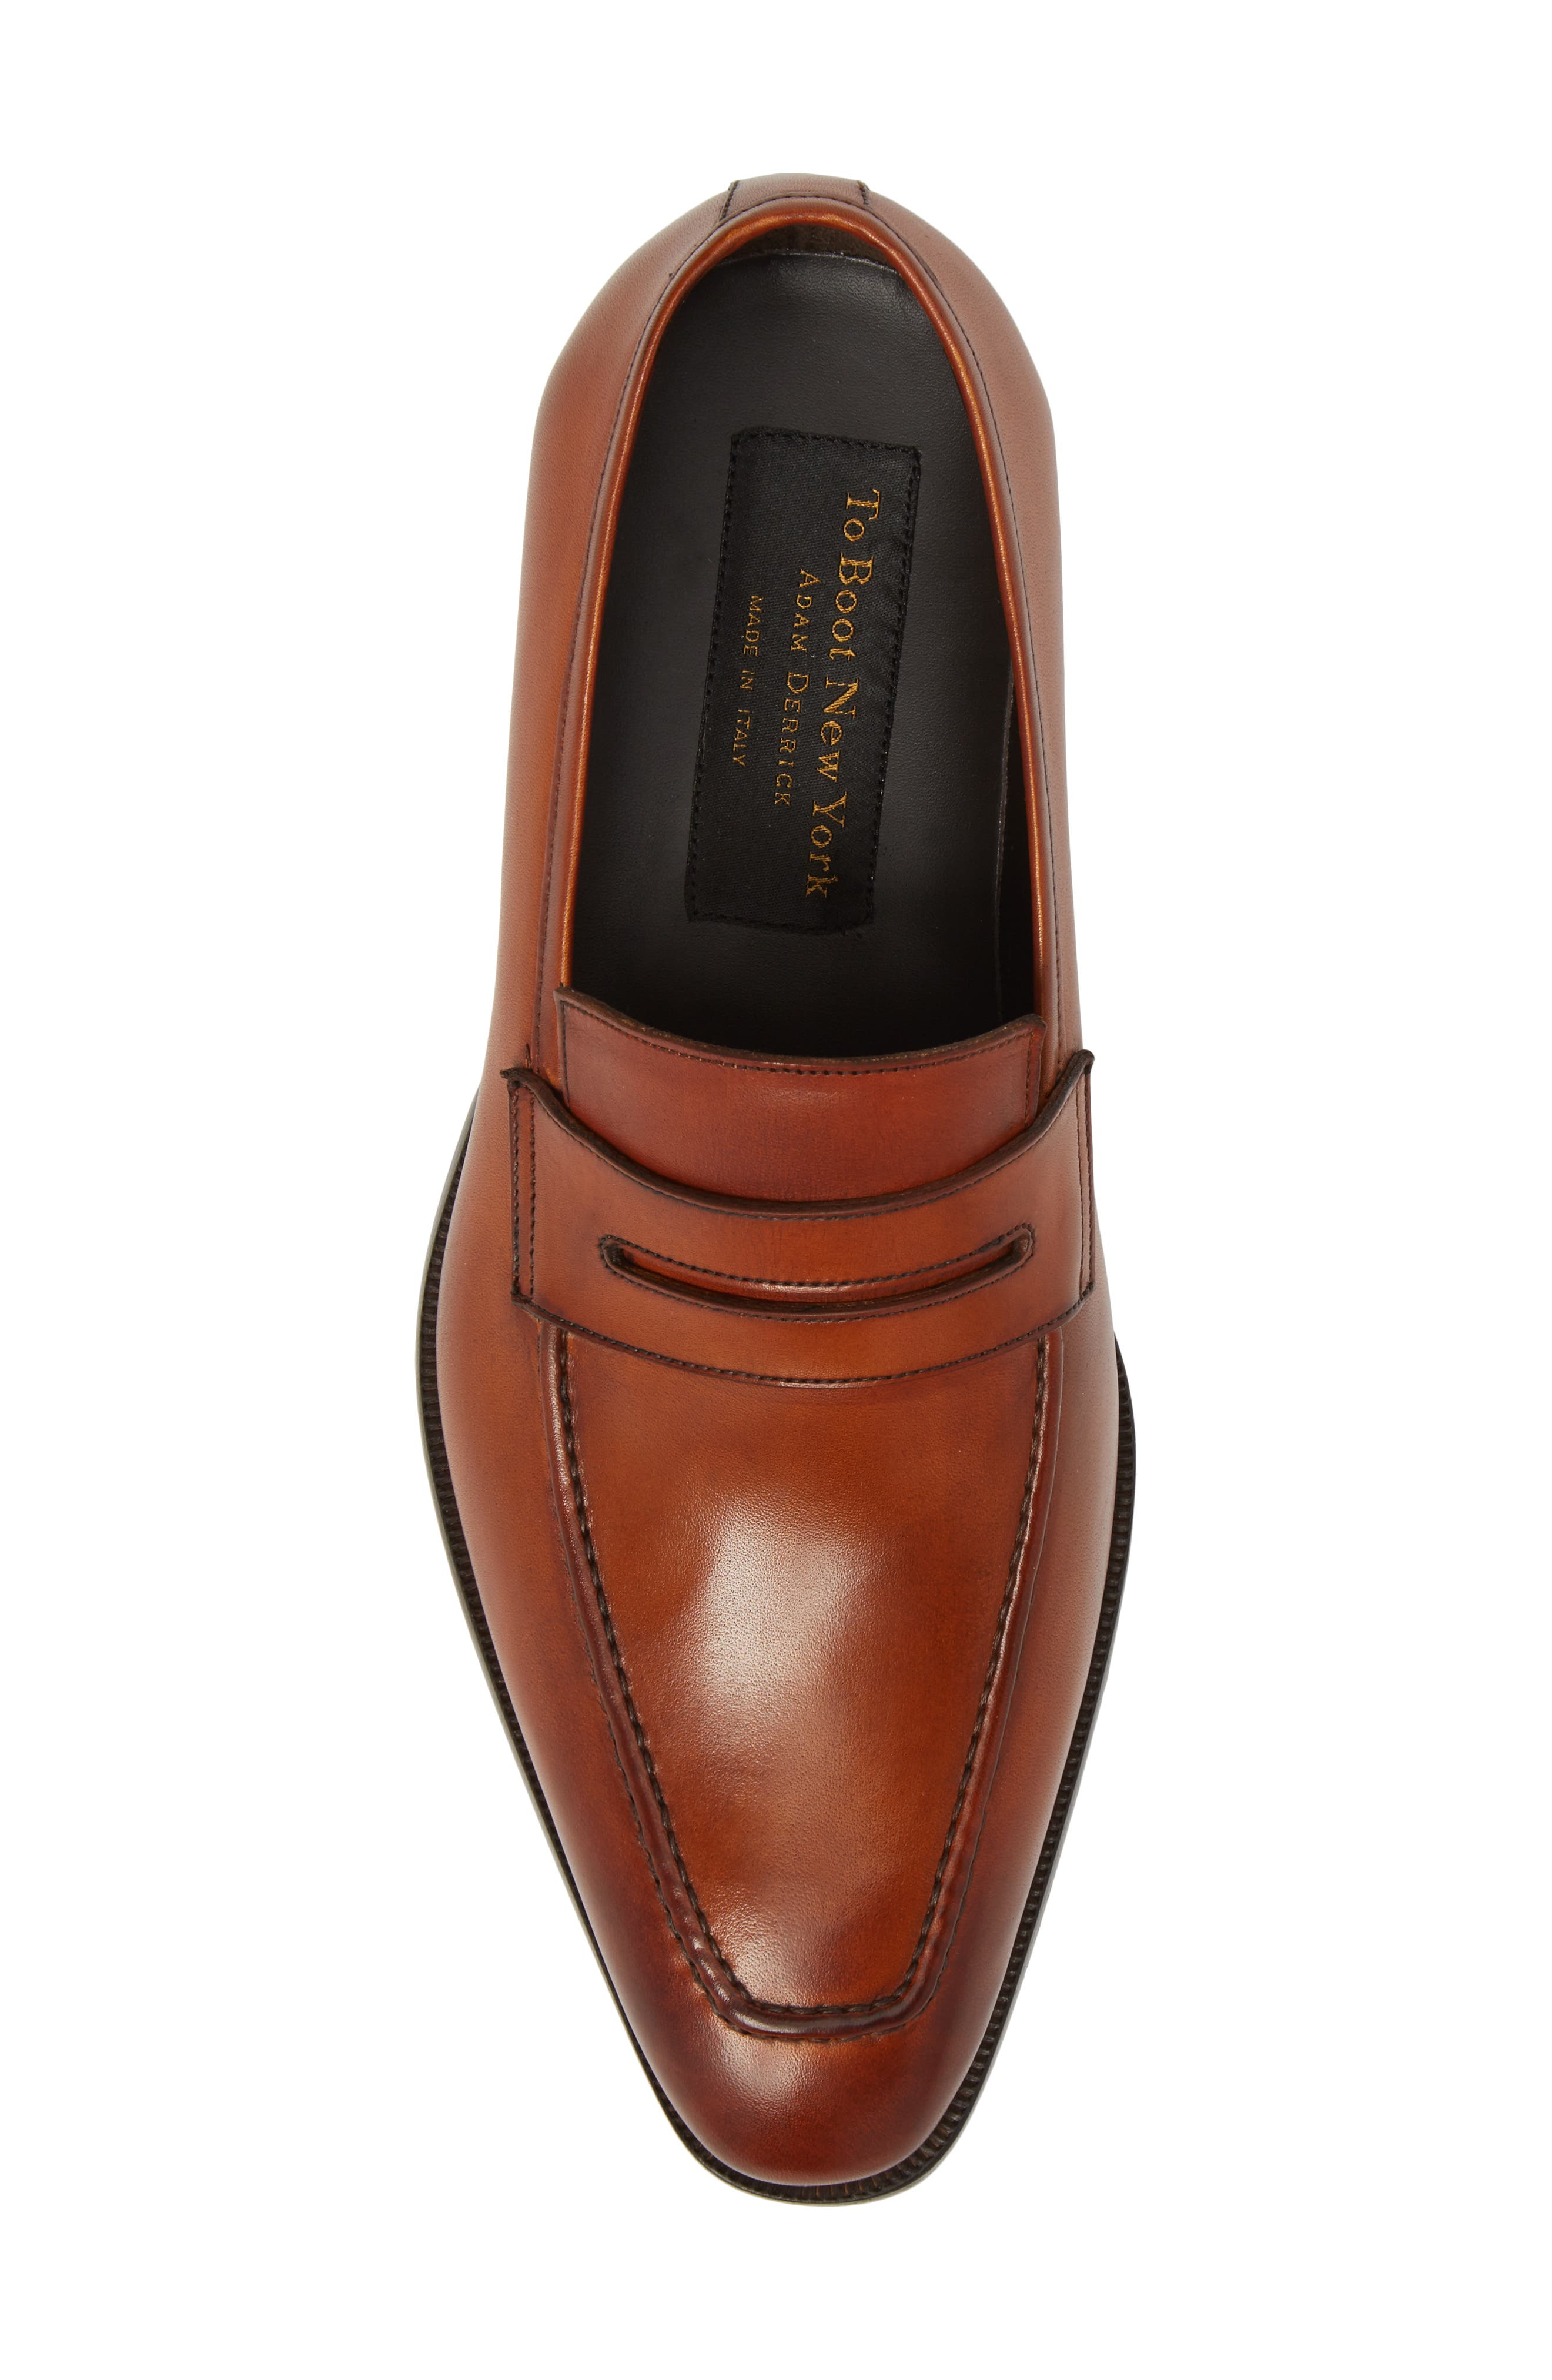 Eastwood Apron Toe Penny Loafer,                             Alternate thumbnail 5, color,                             231